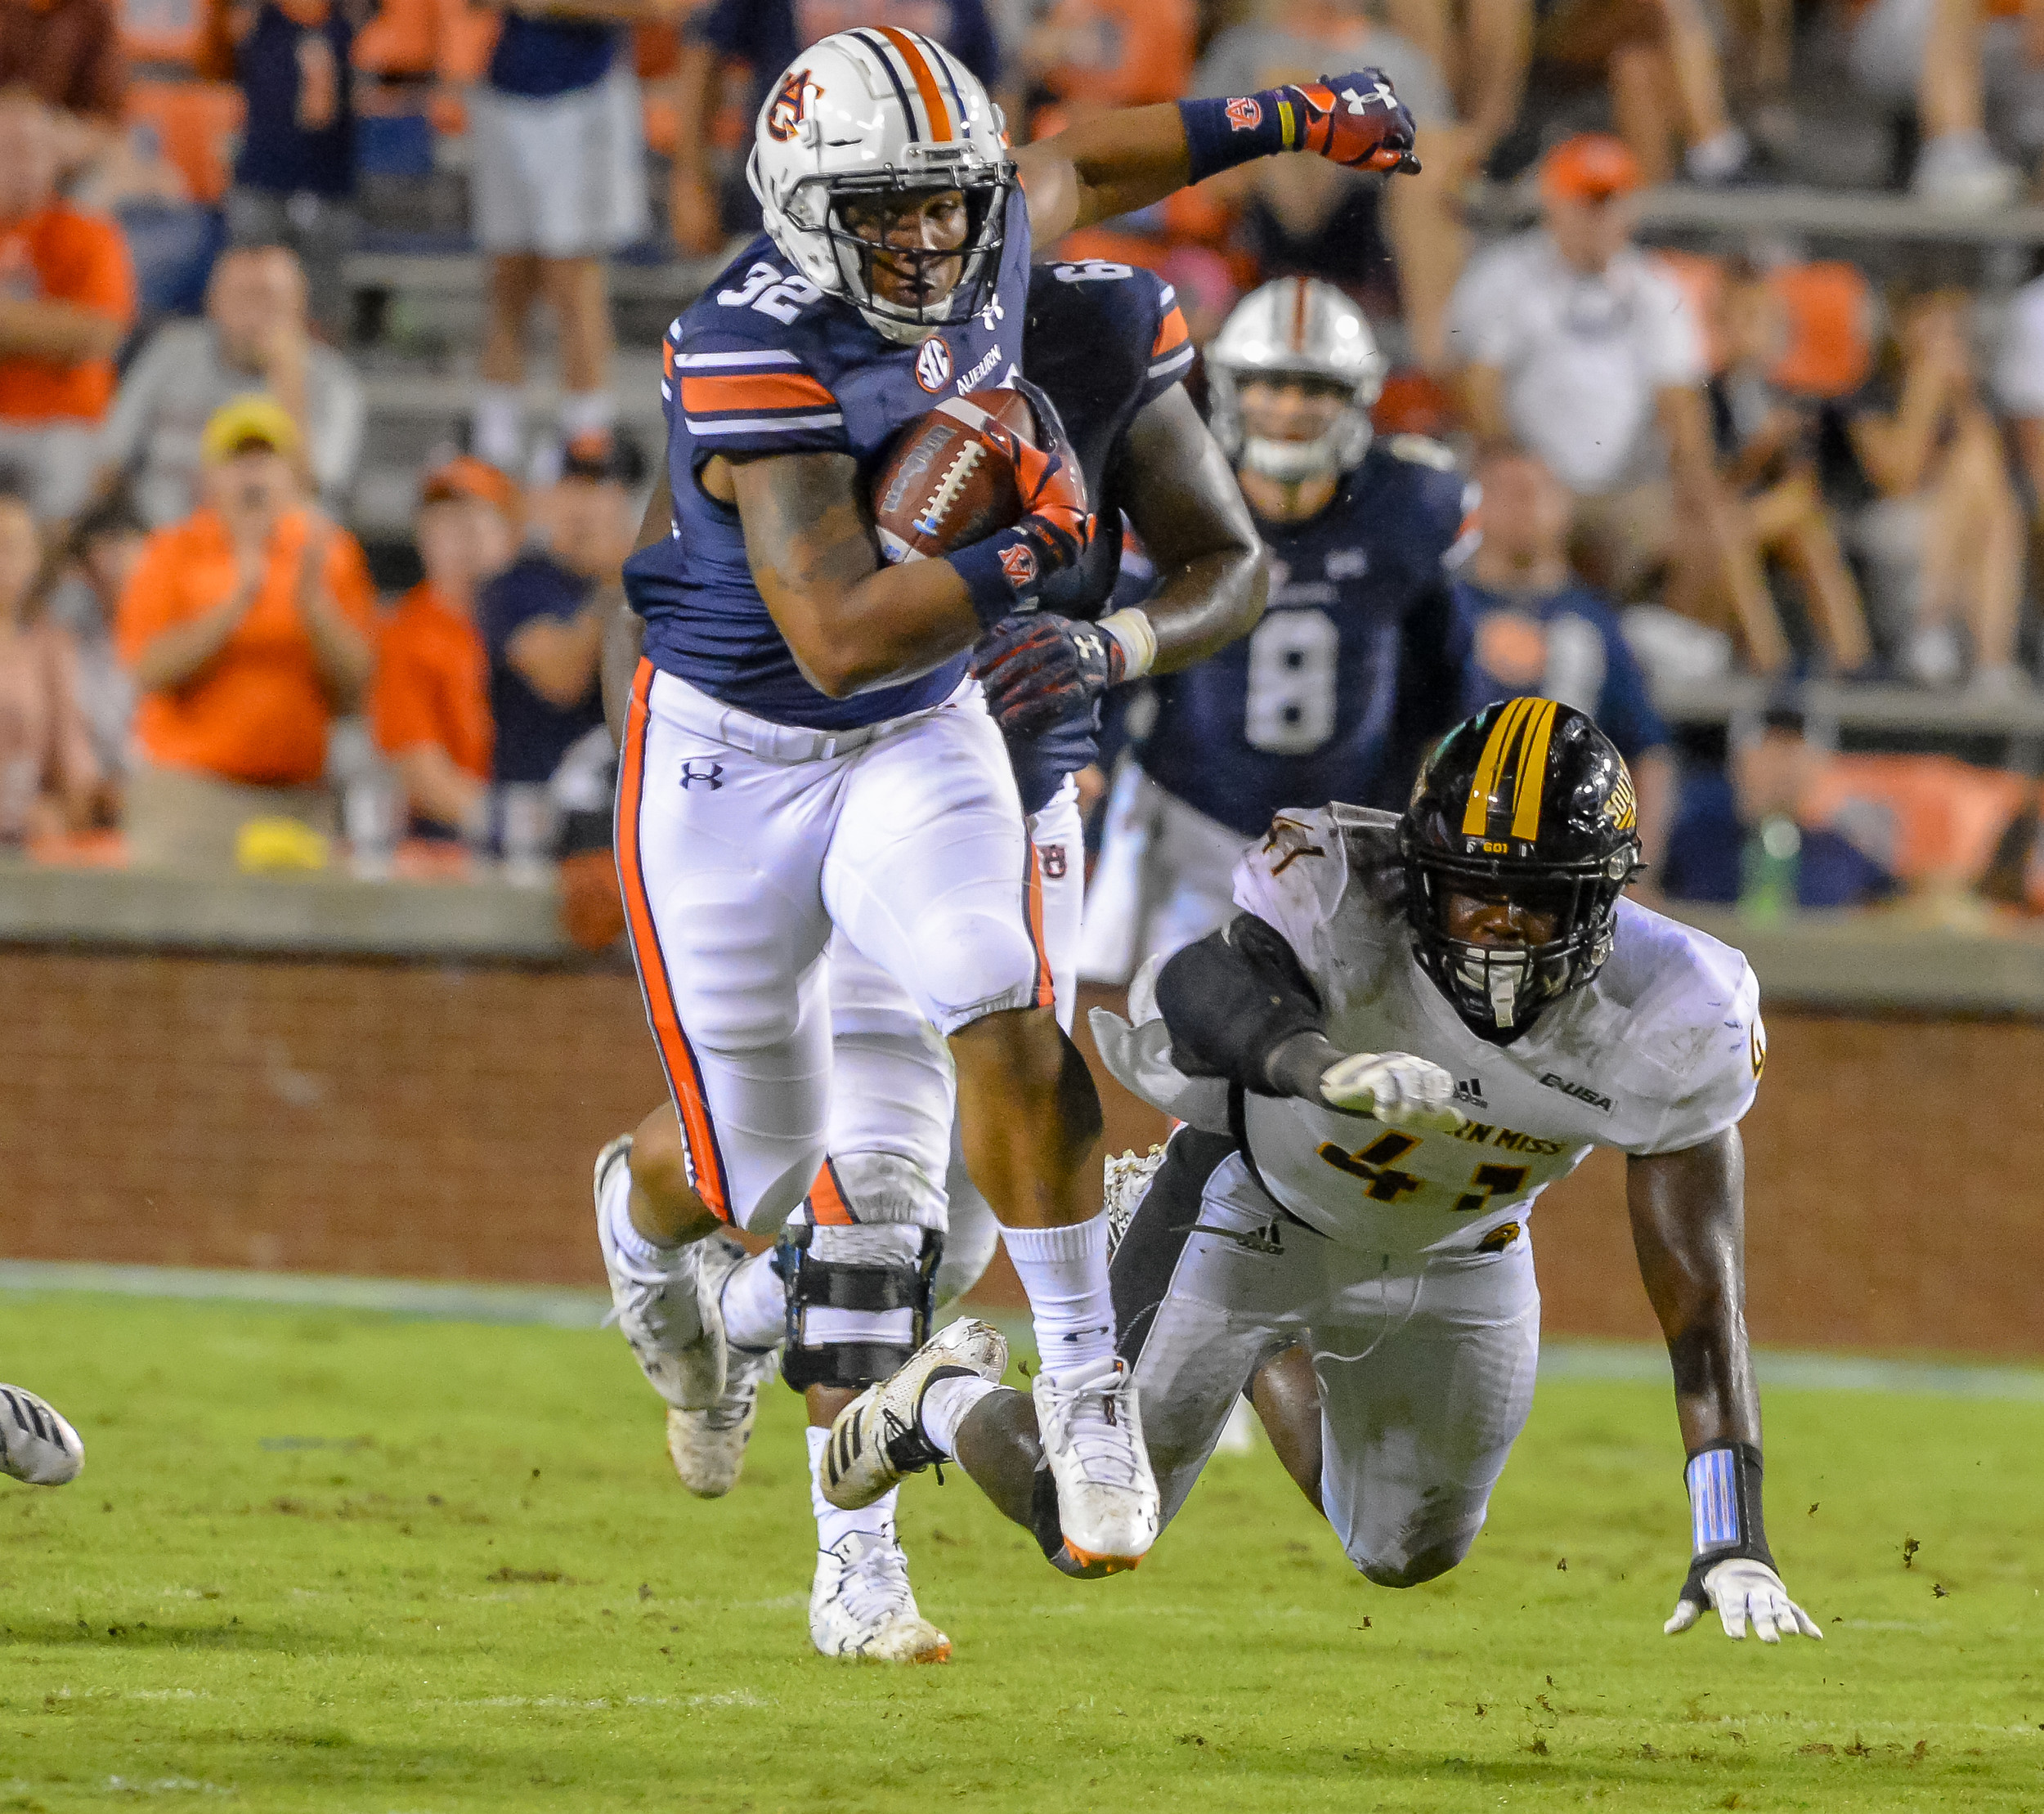 Auburn Tigers running back Malik Miller (32) breaks the tackle of Southern Miss Golden Eagles linebacker Santrell Latham (47) during the second half of Saturday's game, at Jordan Hare Stadium in Auburn AL. Daily Mountain Eagle -  Jeff Johnsey